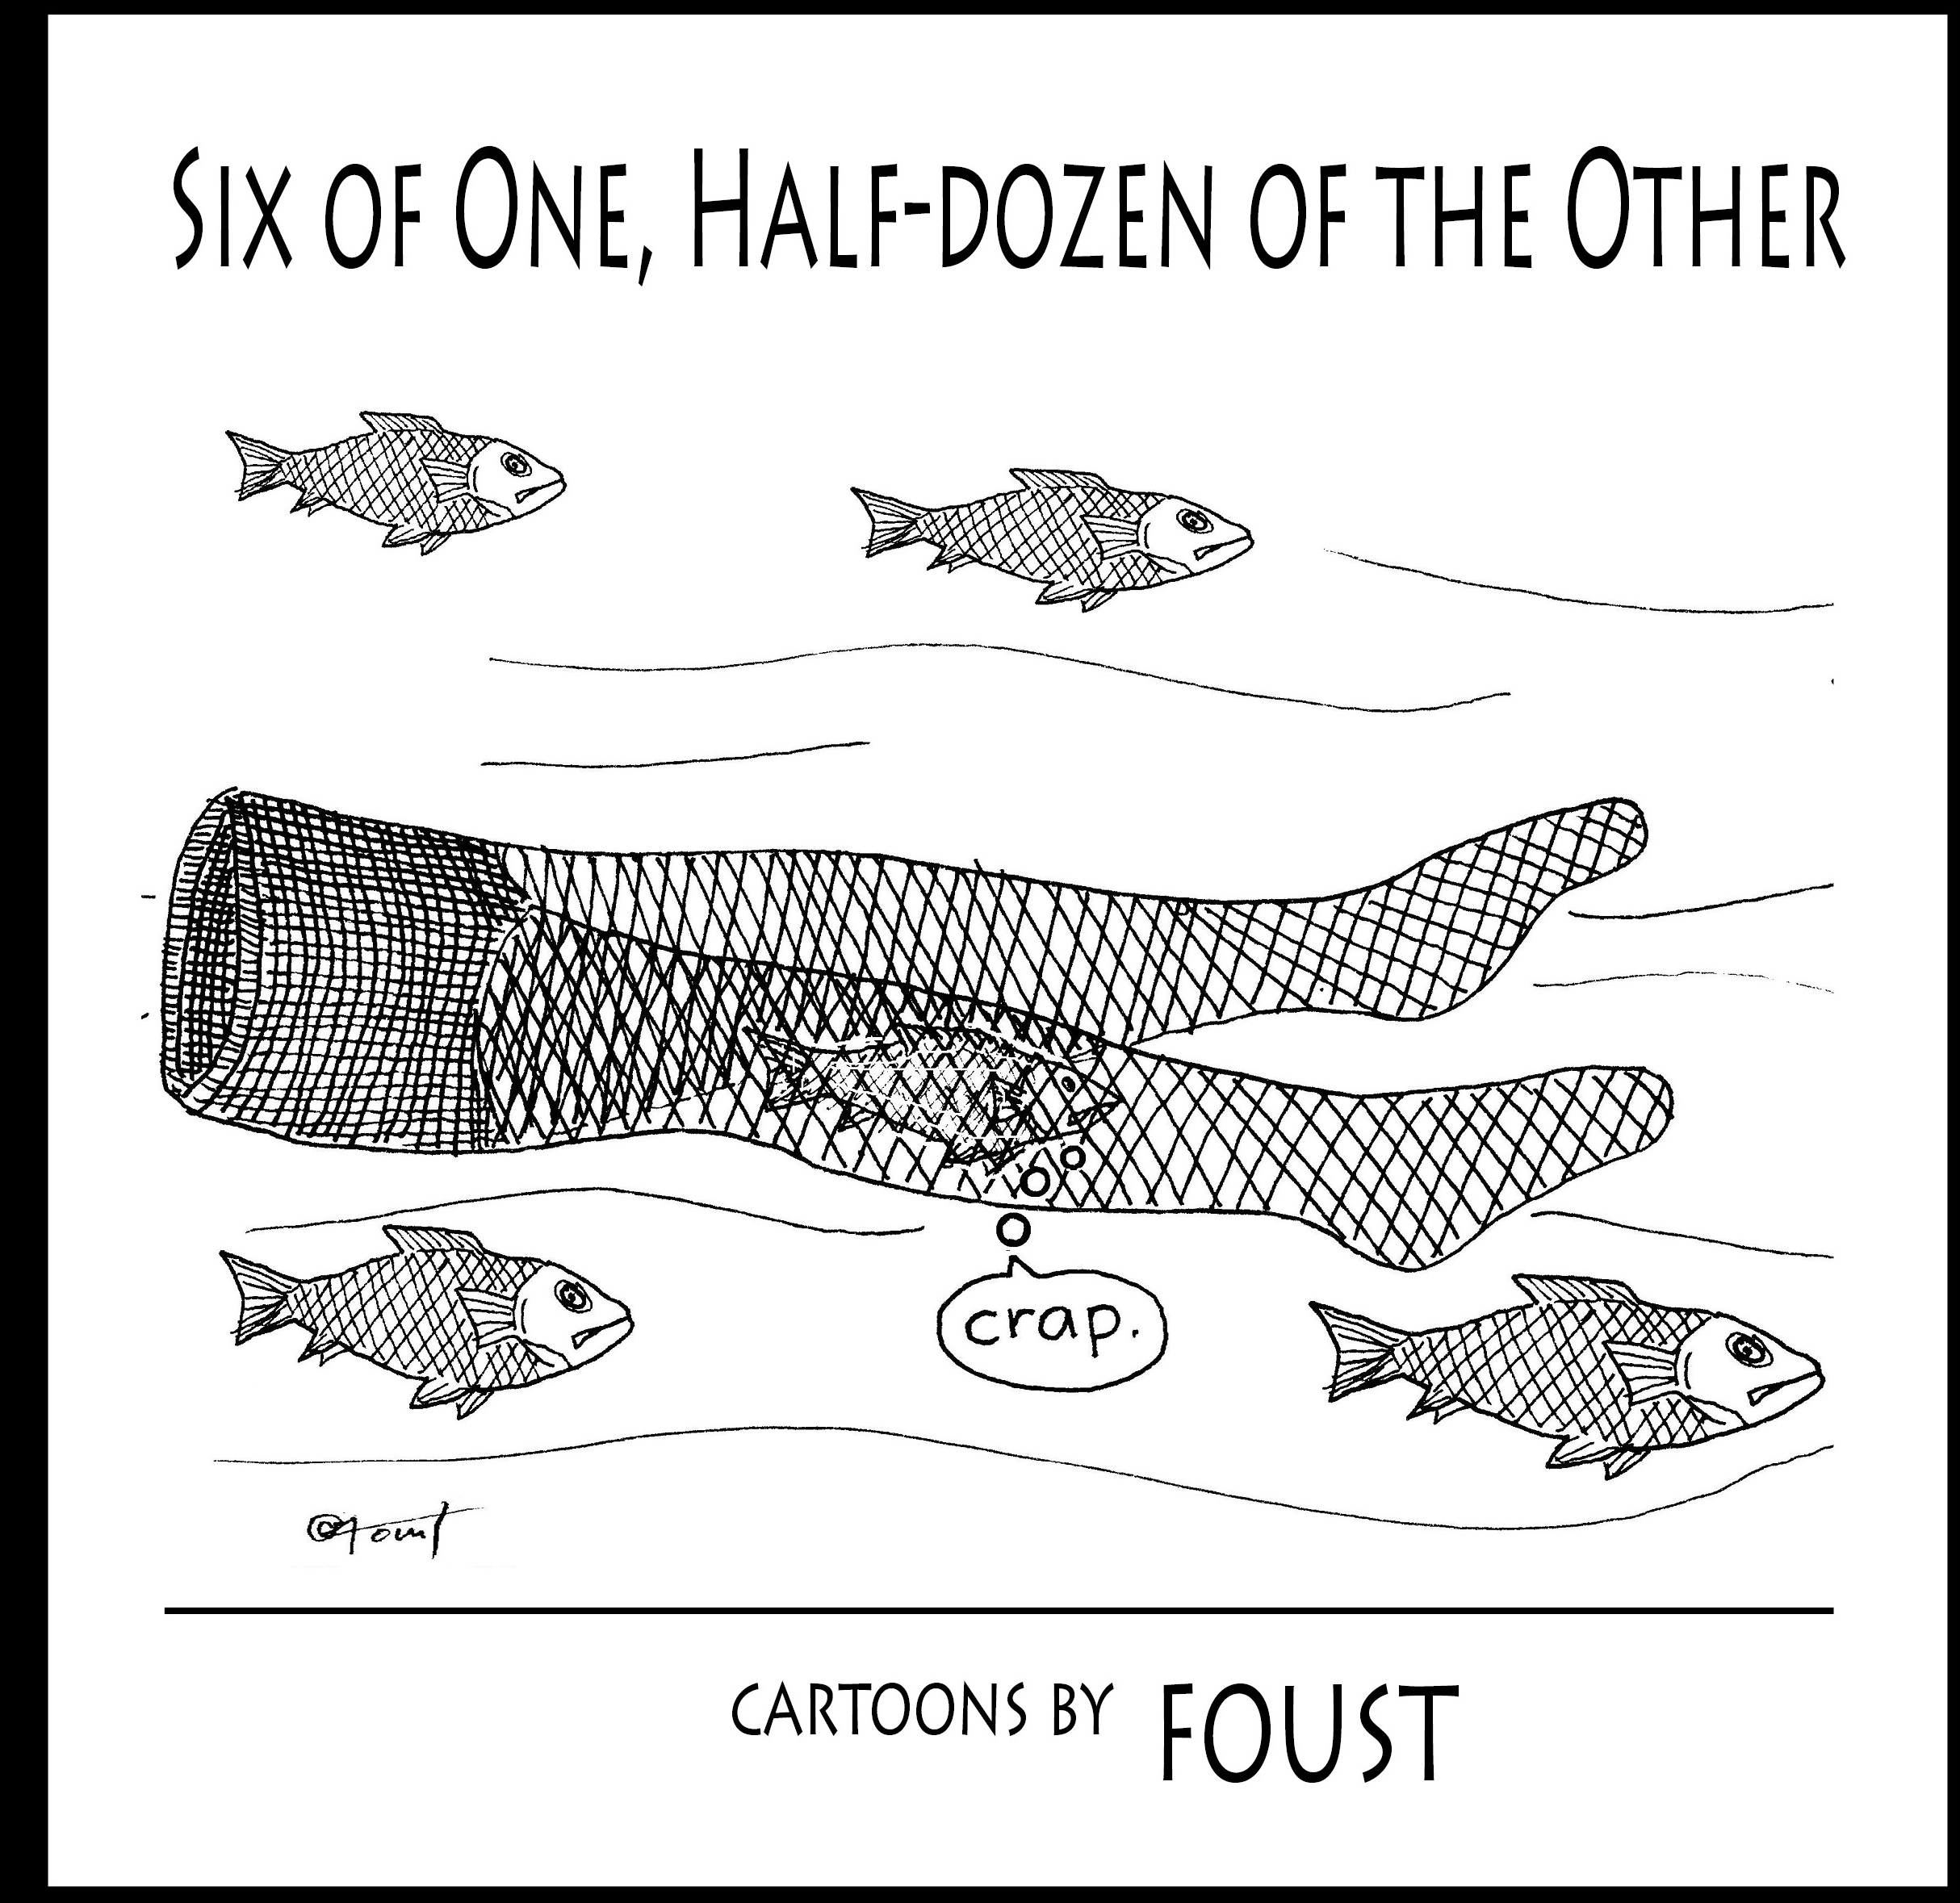 Six of One, Half-dozen of the Other - 155 cartoons by Foust